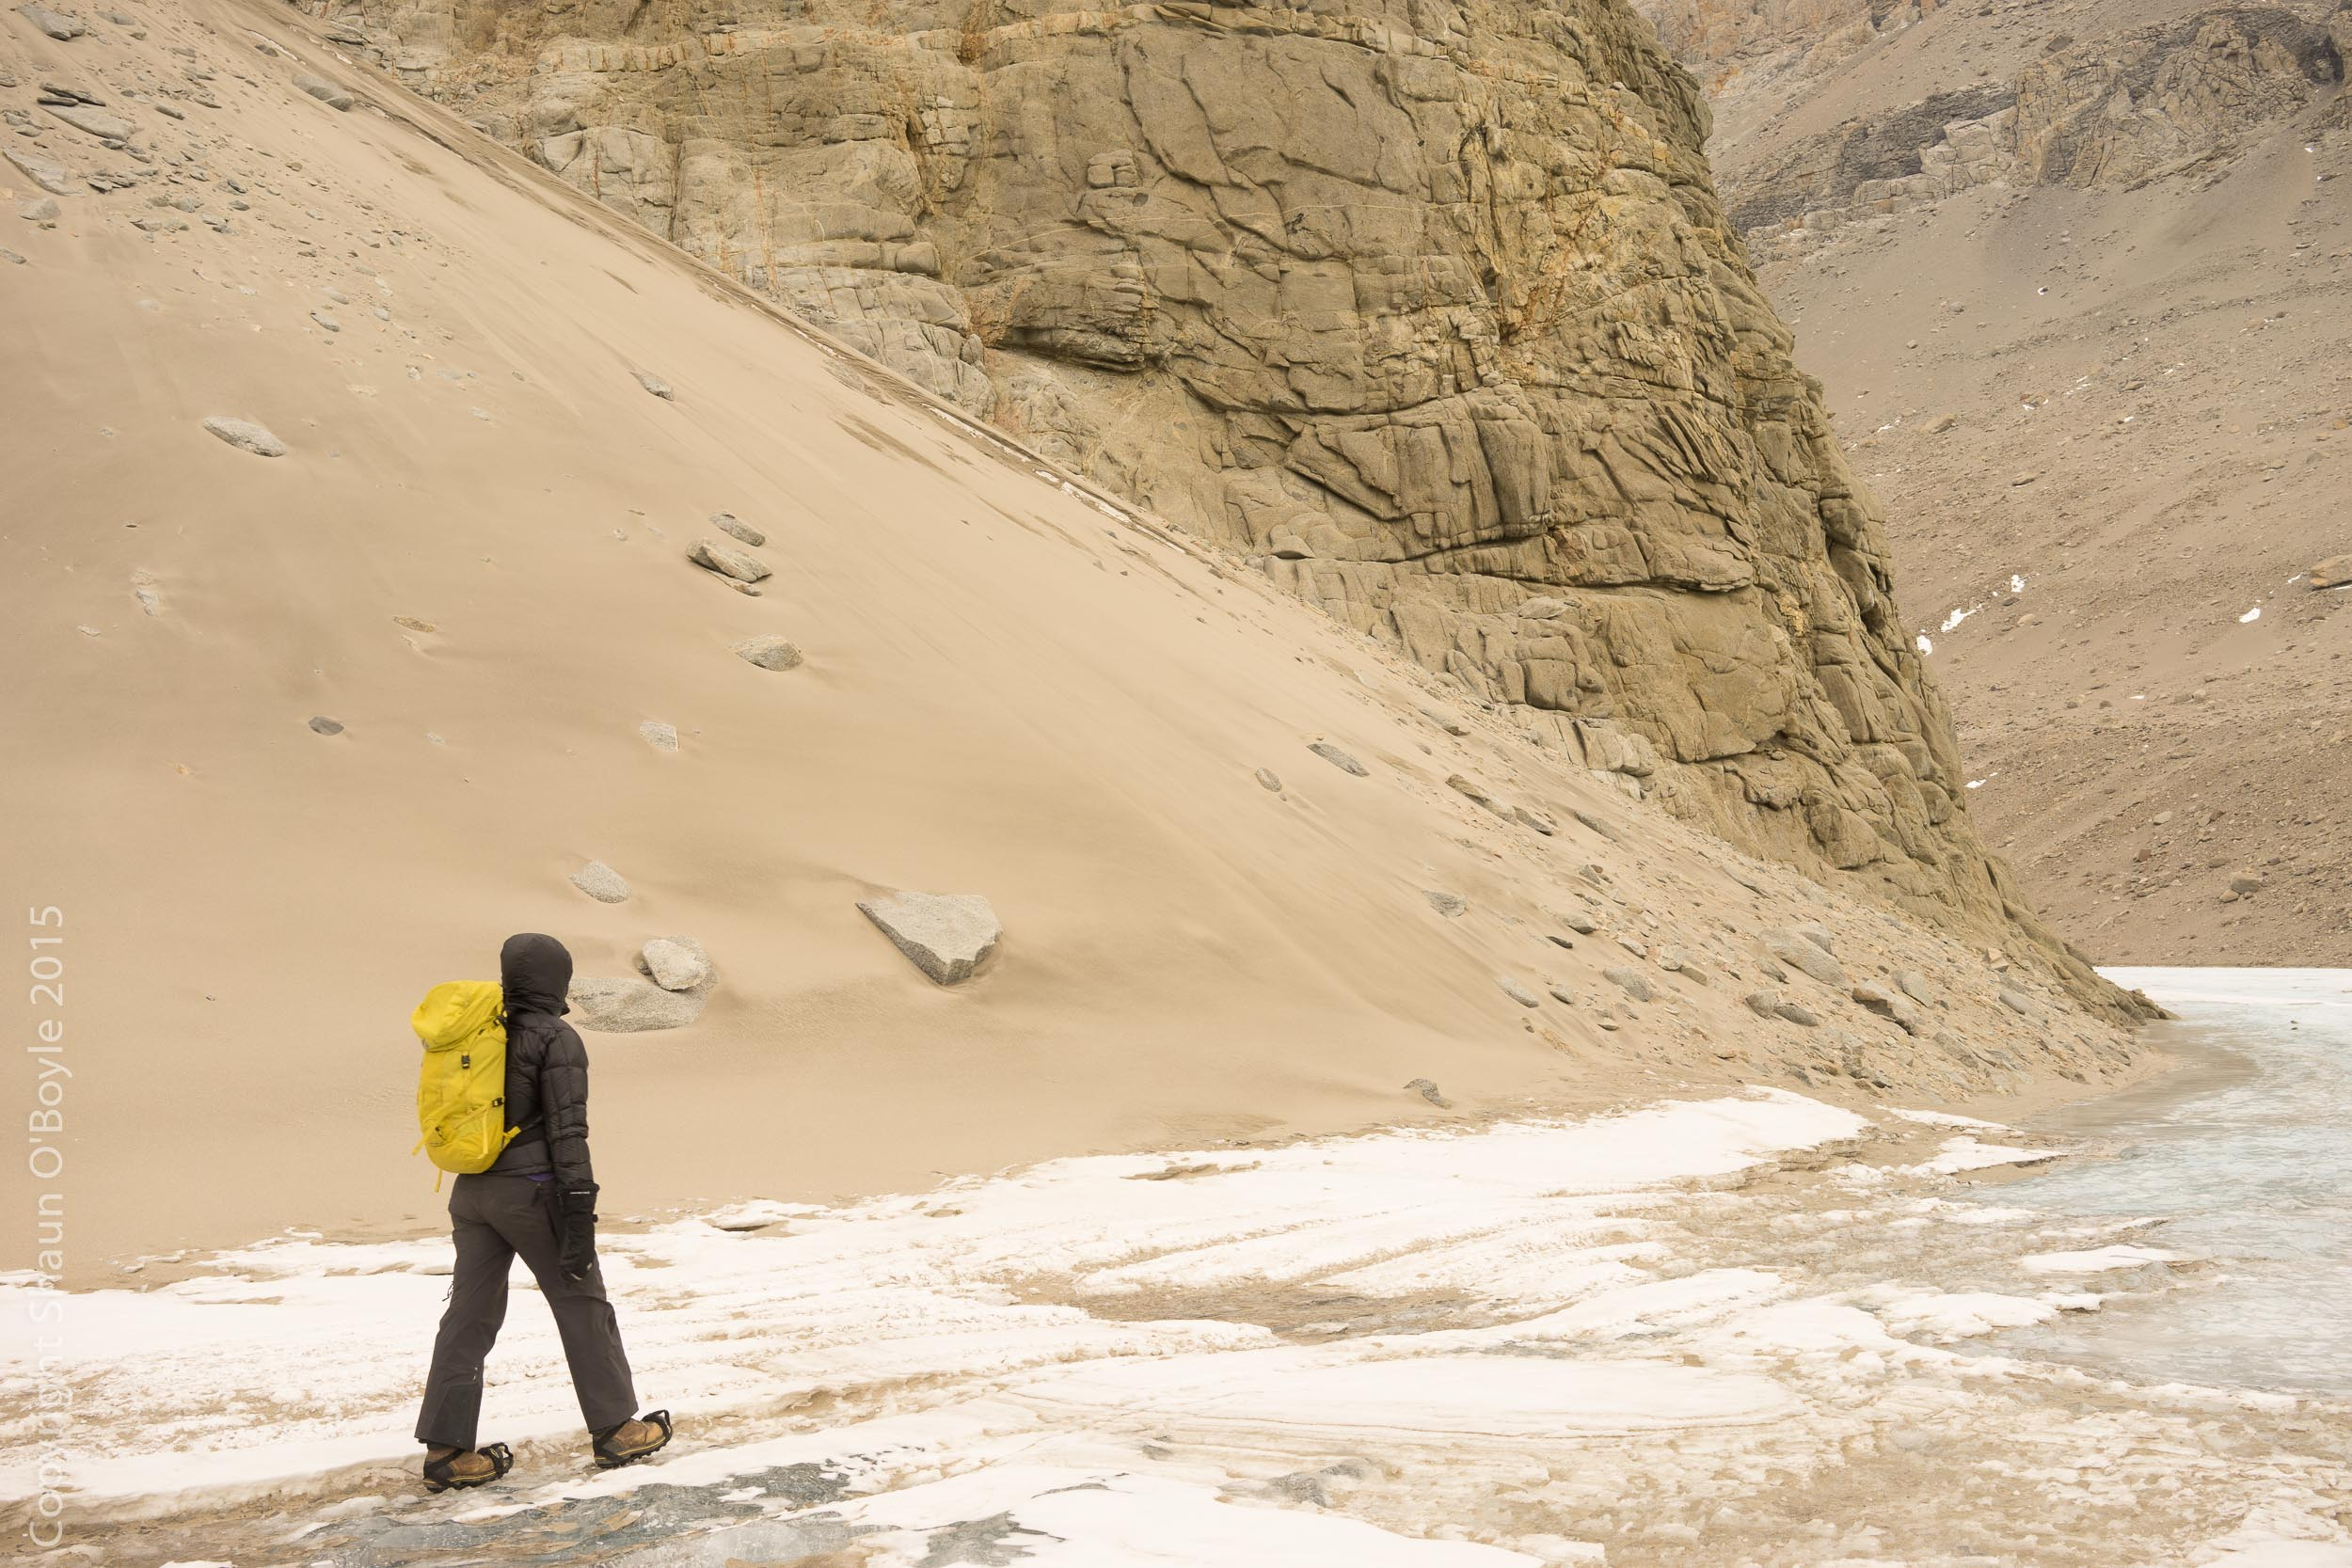 Rene trekking along the slope of Bonney Riegel that seperates the east and west lobes of Lake Bonney